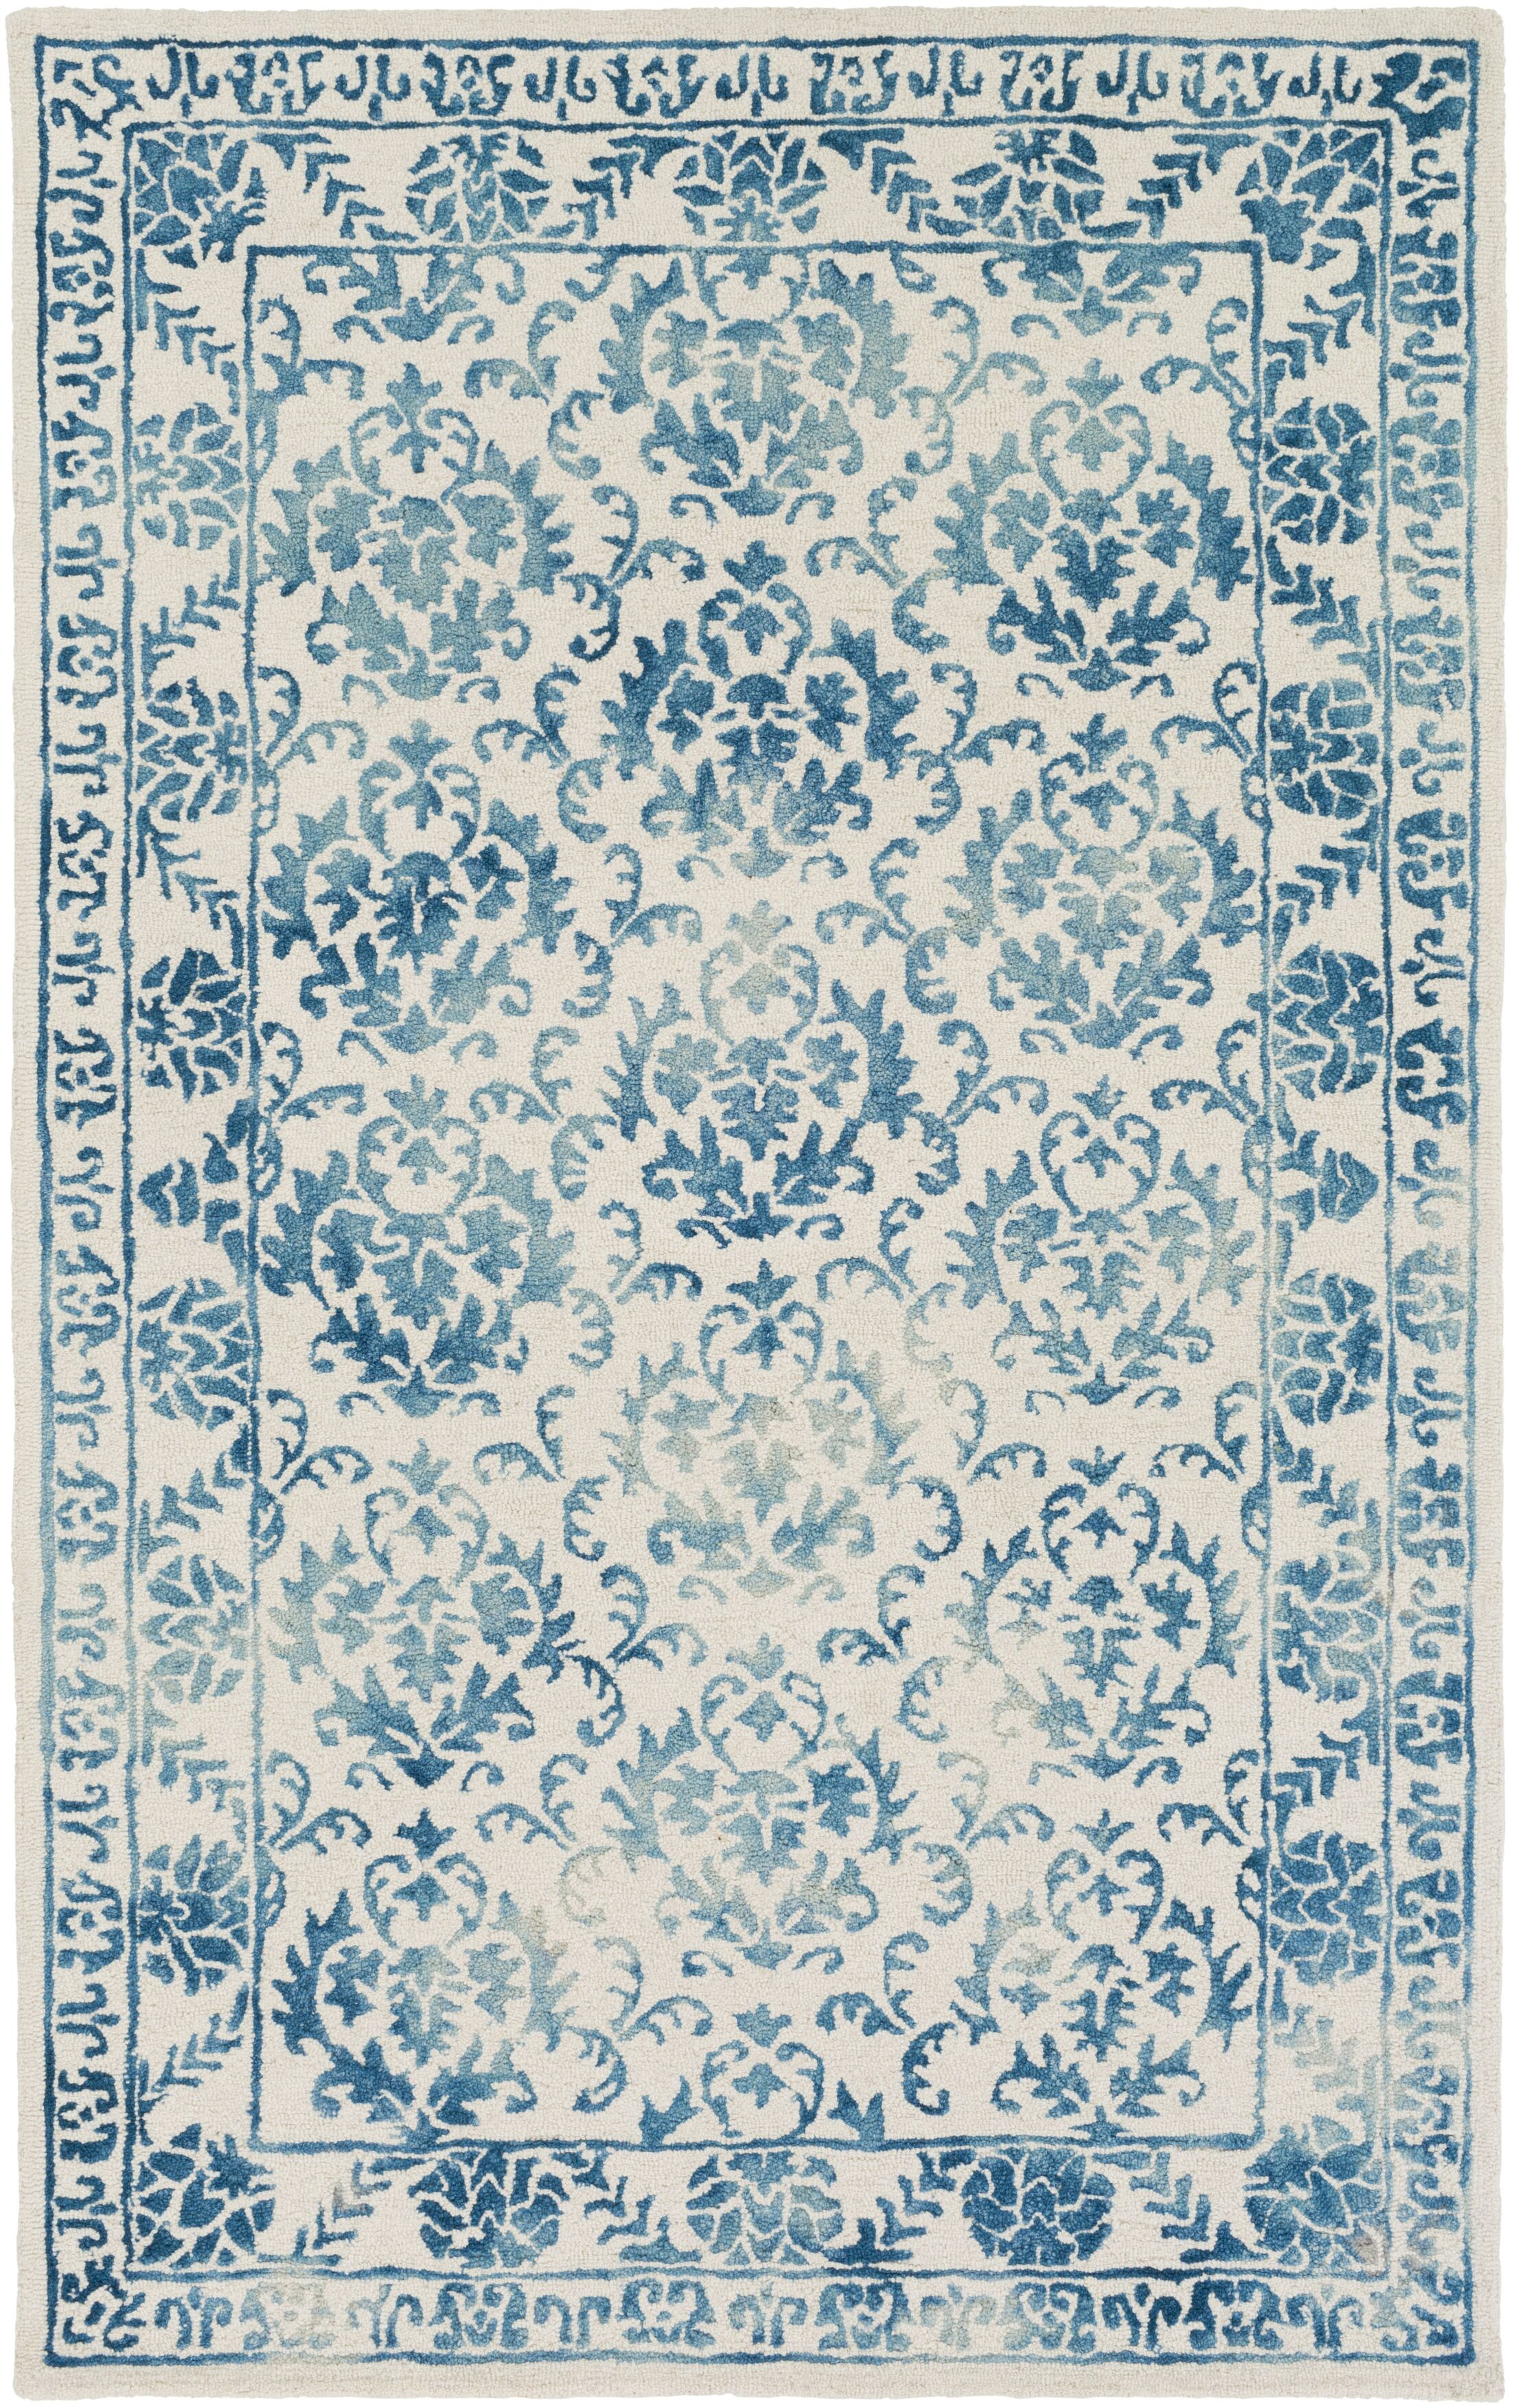 Kiernan Hand Tufted Teal/Off-White Area Rug Rug Size: Rectangle 8' x 10'